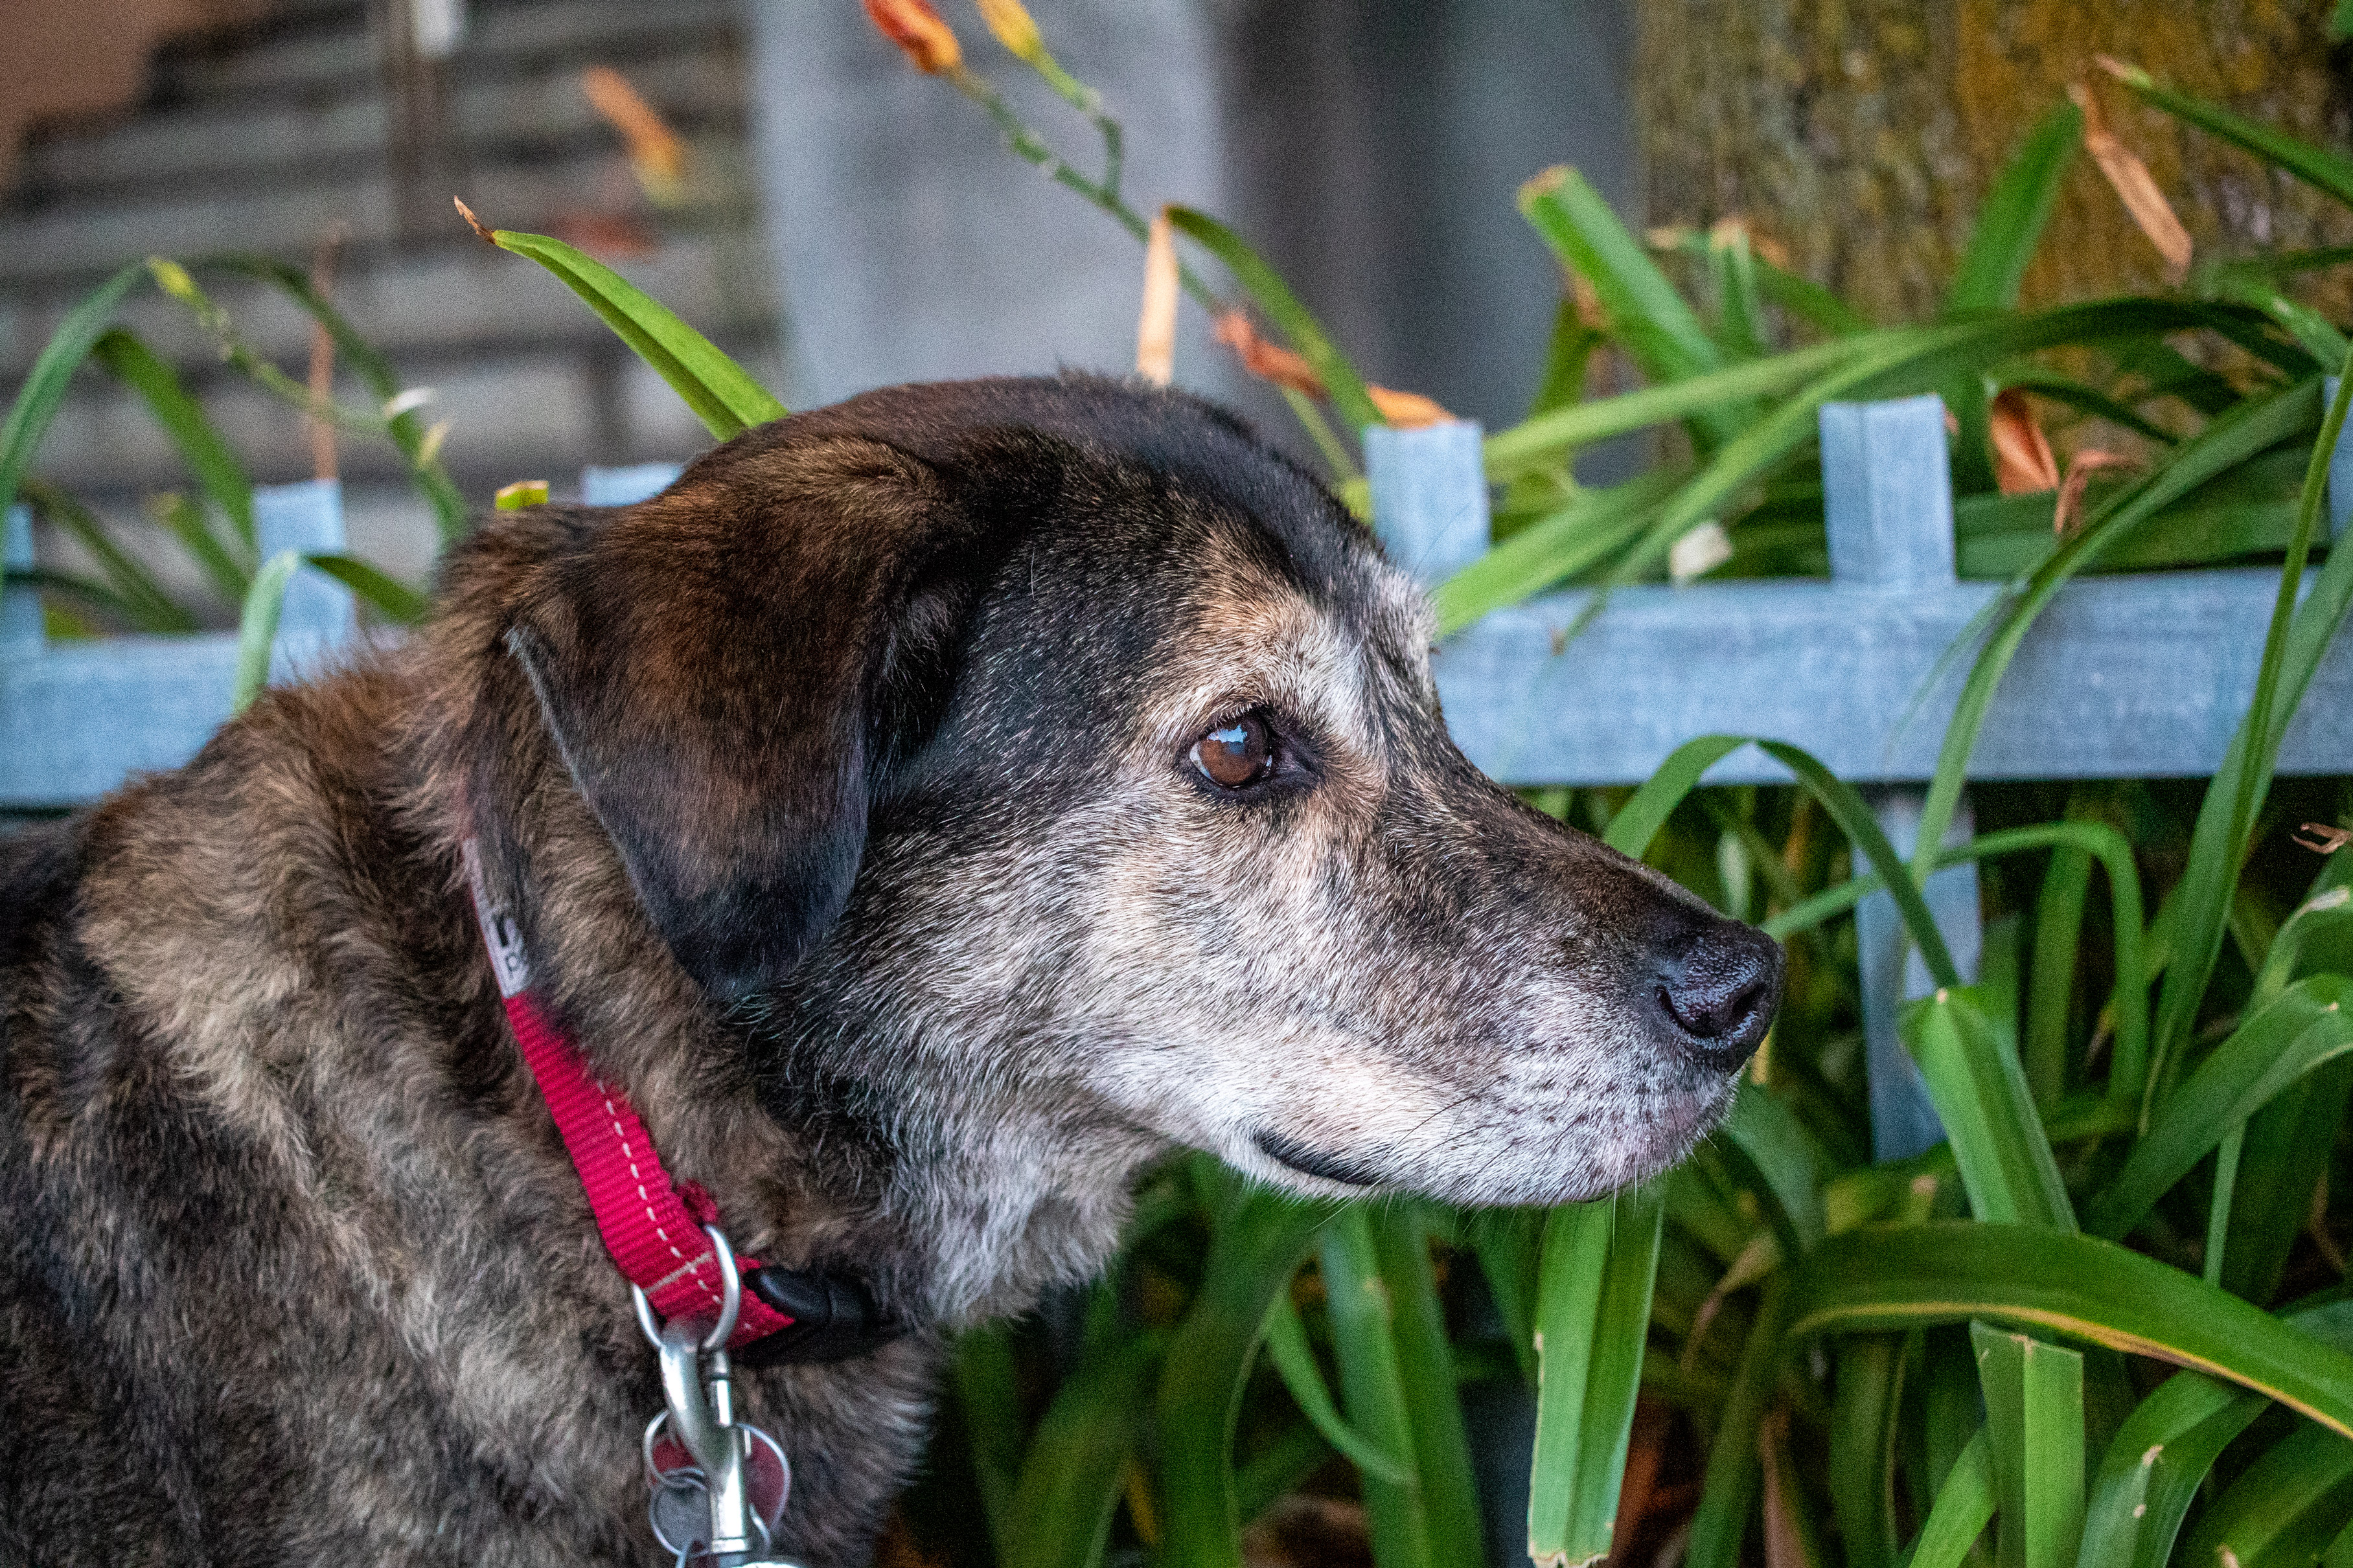 Dog with a red collar in front of a blue fence and orange lilies